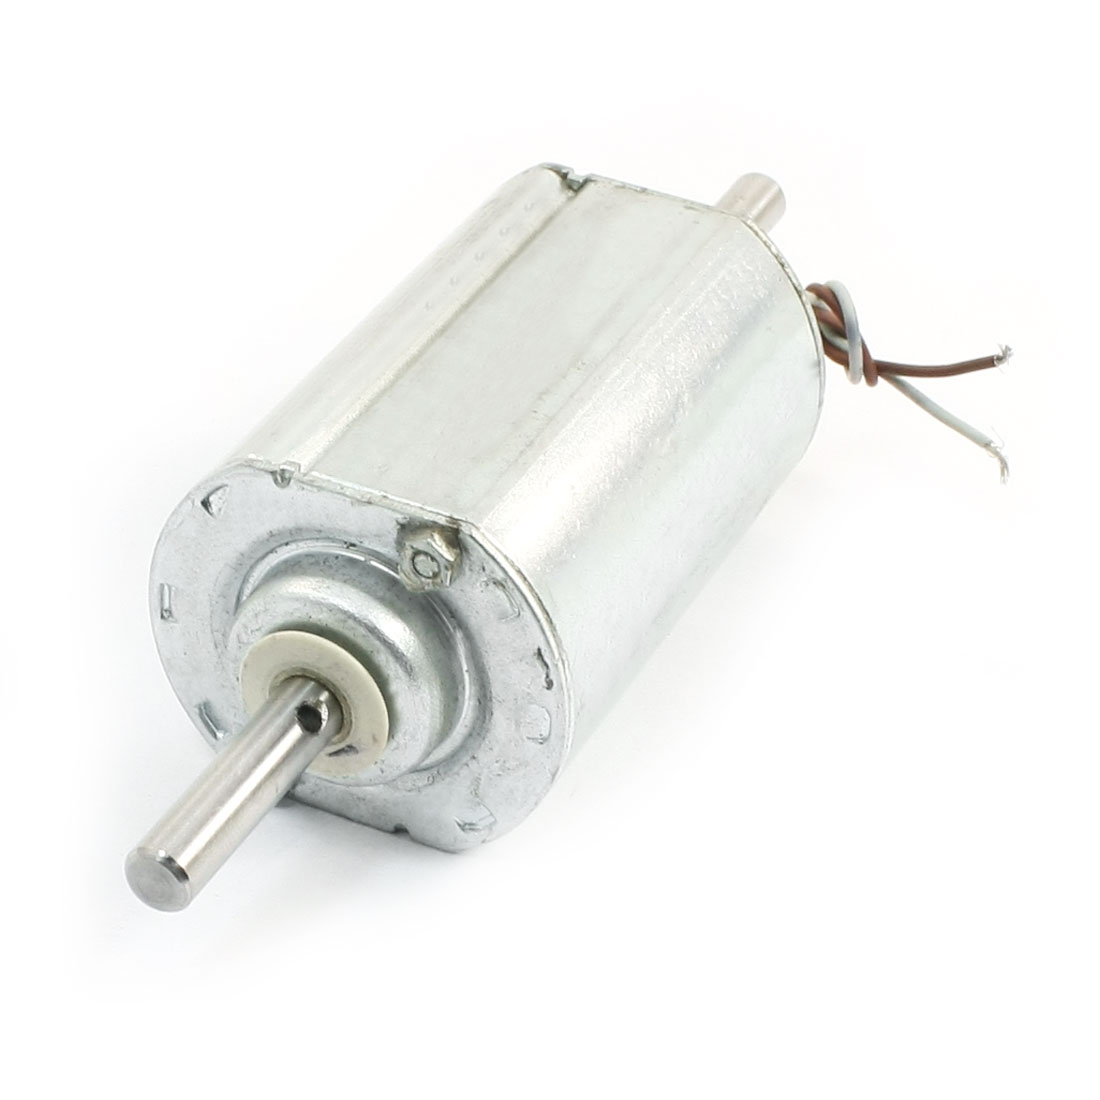 DC-9V-24V-15000RPM-Inner-Rotor-12-Pole-22H-Series-Brushless-Motor